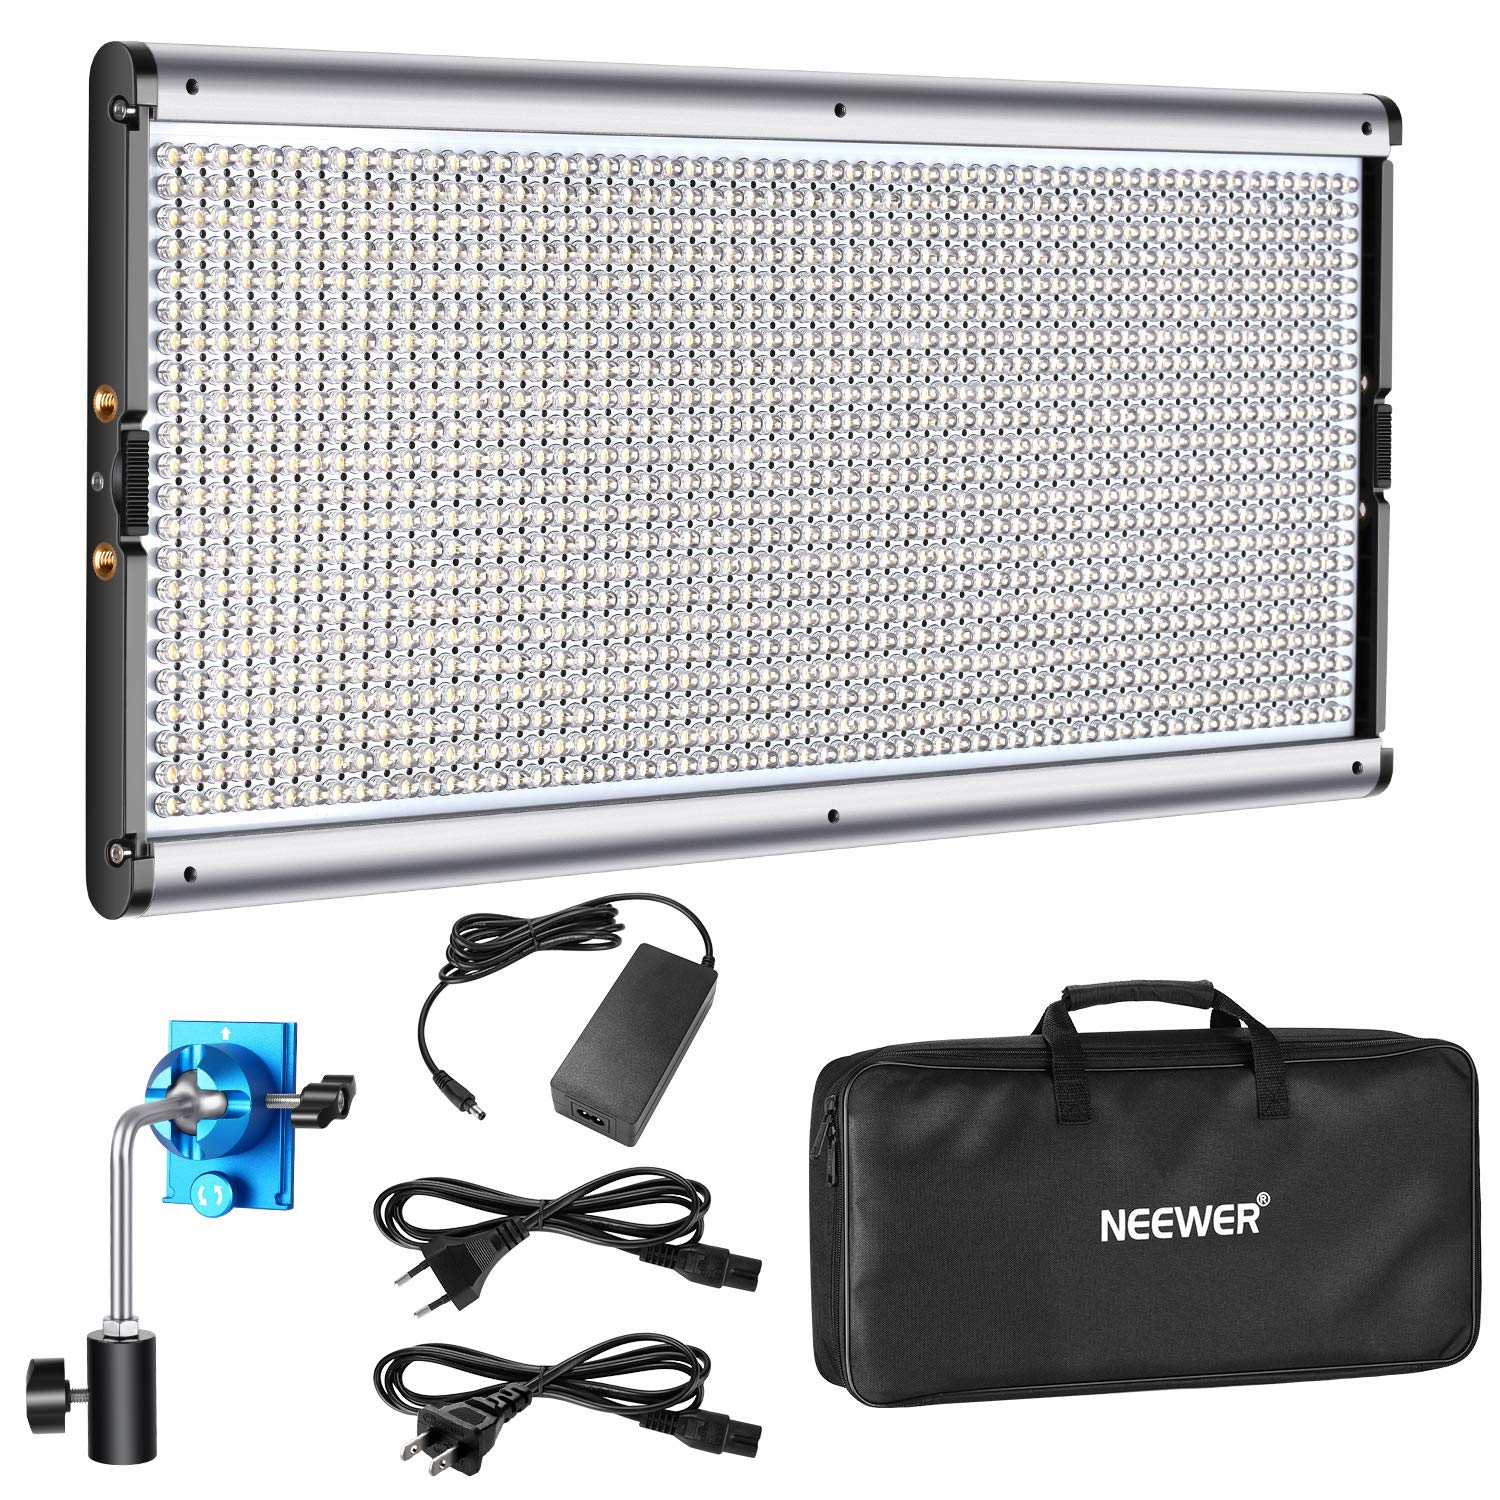 Neewer Dimmable LED Video Light Photography LED Lighting with Metal Frame 1320 LED Beads 3200-5600K, DC Adapter/Battery Power Options for Studio Portrait Product Video Shooting (Battery Not Included) by Neewer